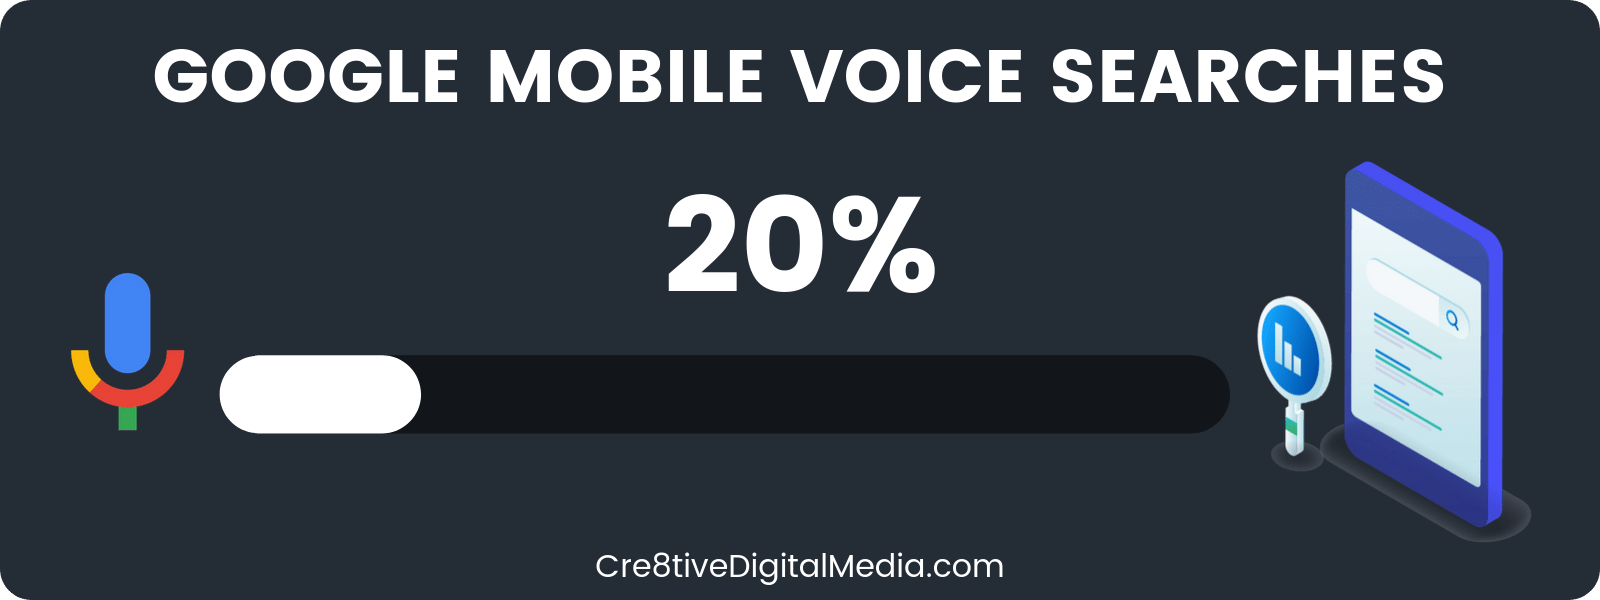 20% of Google mobile queries are voice searches